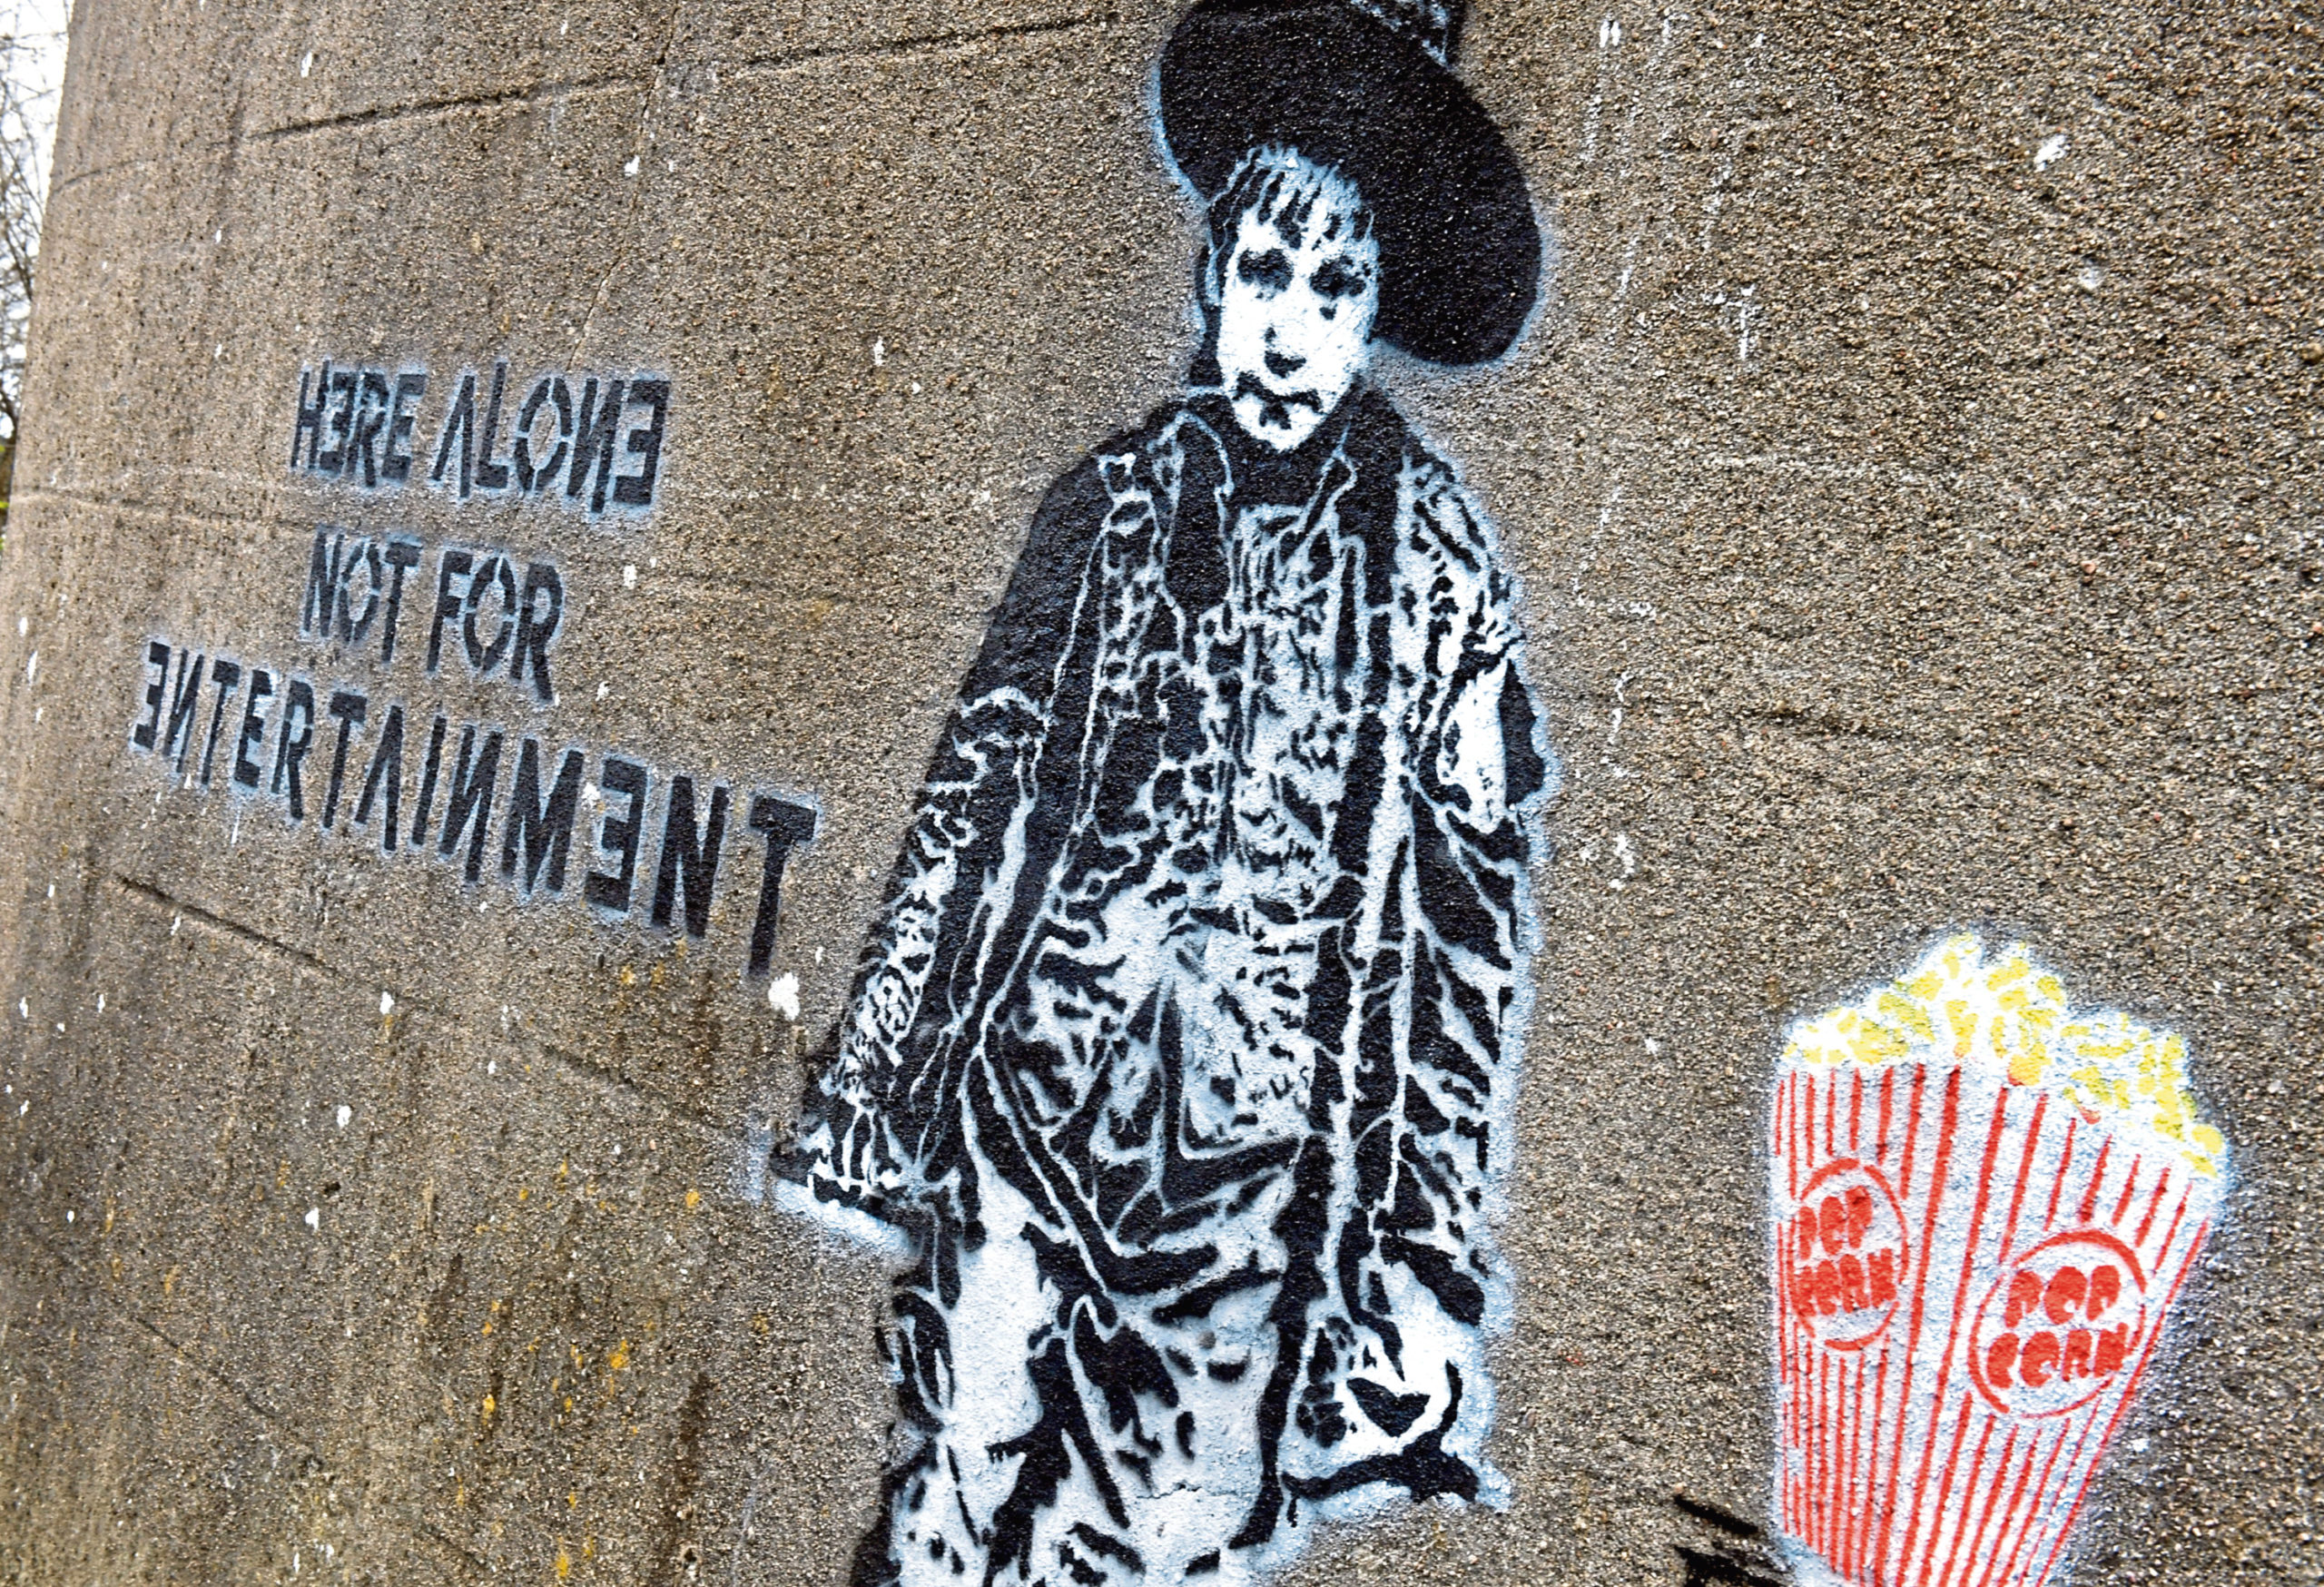 The mural suddenly appeared on Leslie Terrace in the city last week